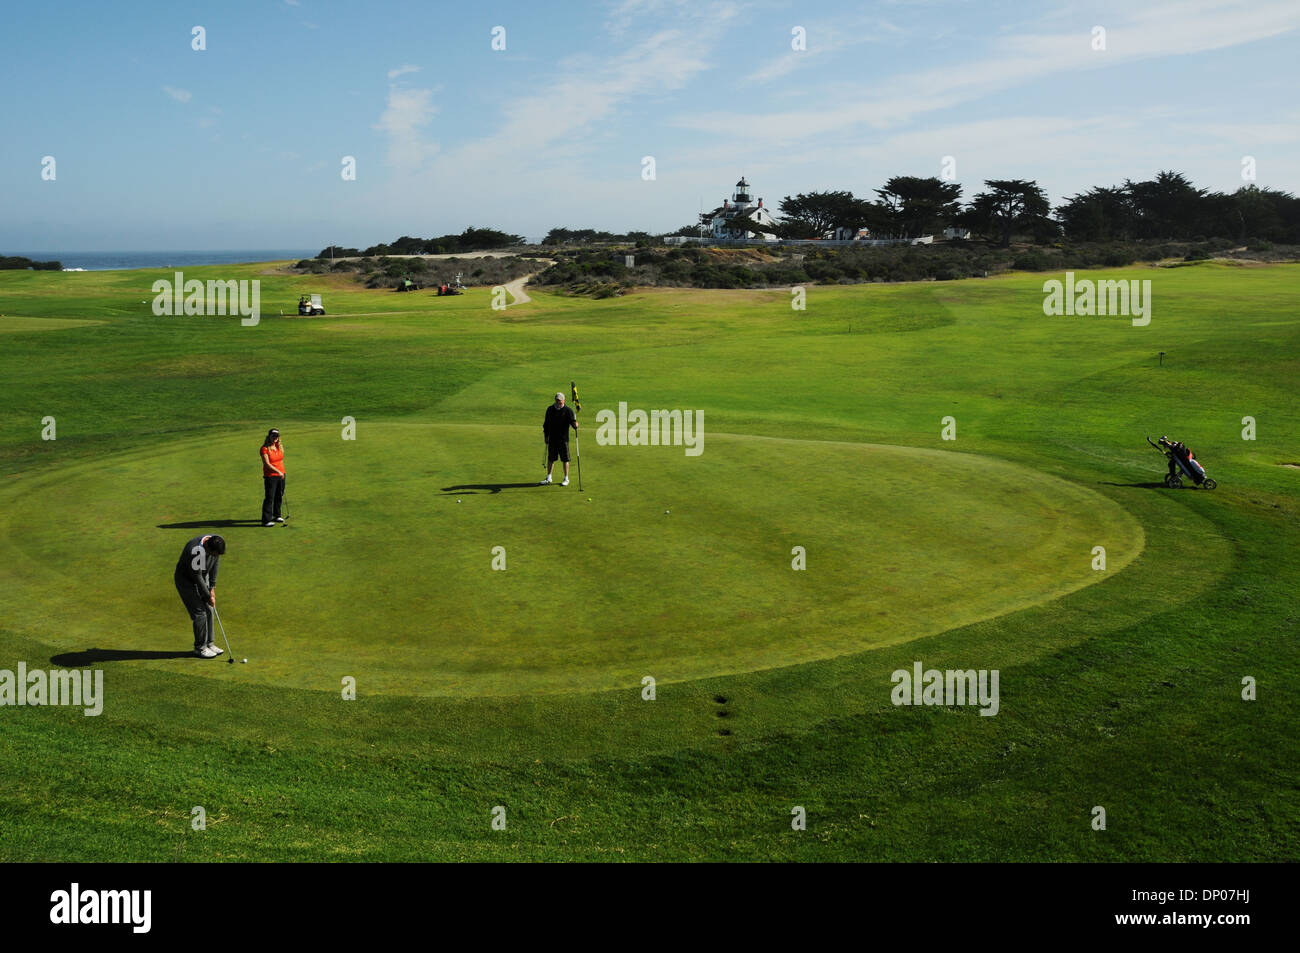 Pacific Grove Golf Links is situated on the tip of scenic Monterey Peninsula, overlooking Point Pinos and the Pacific Ocean, - Stock Image